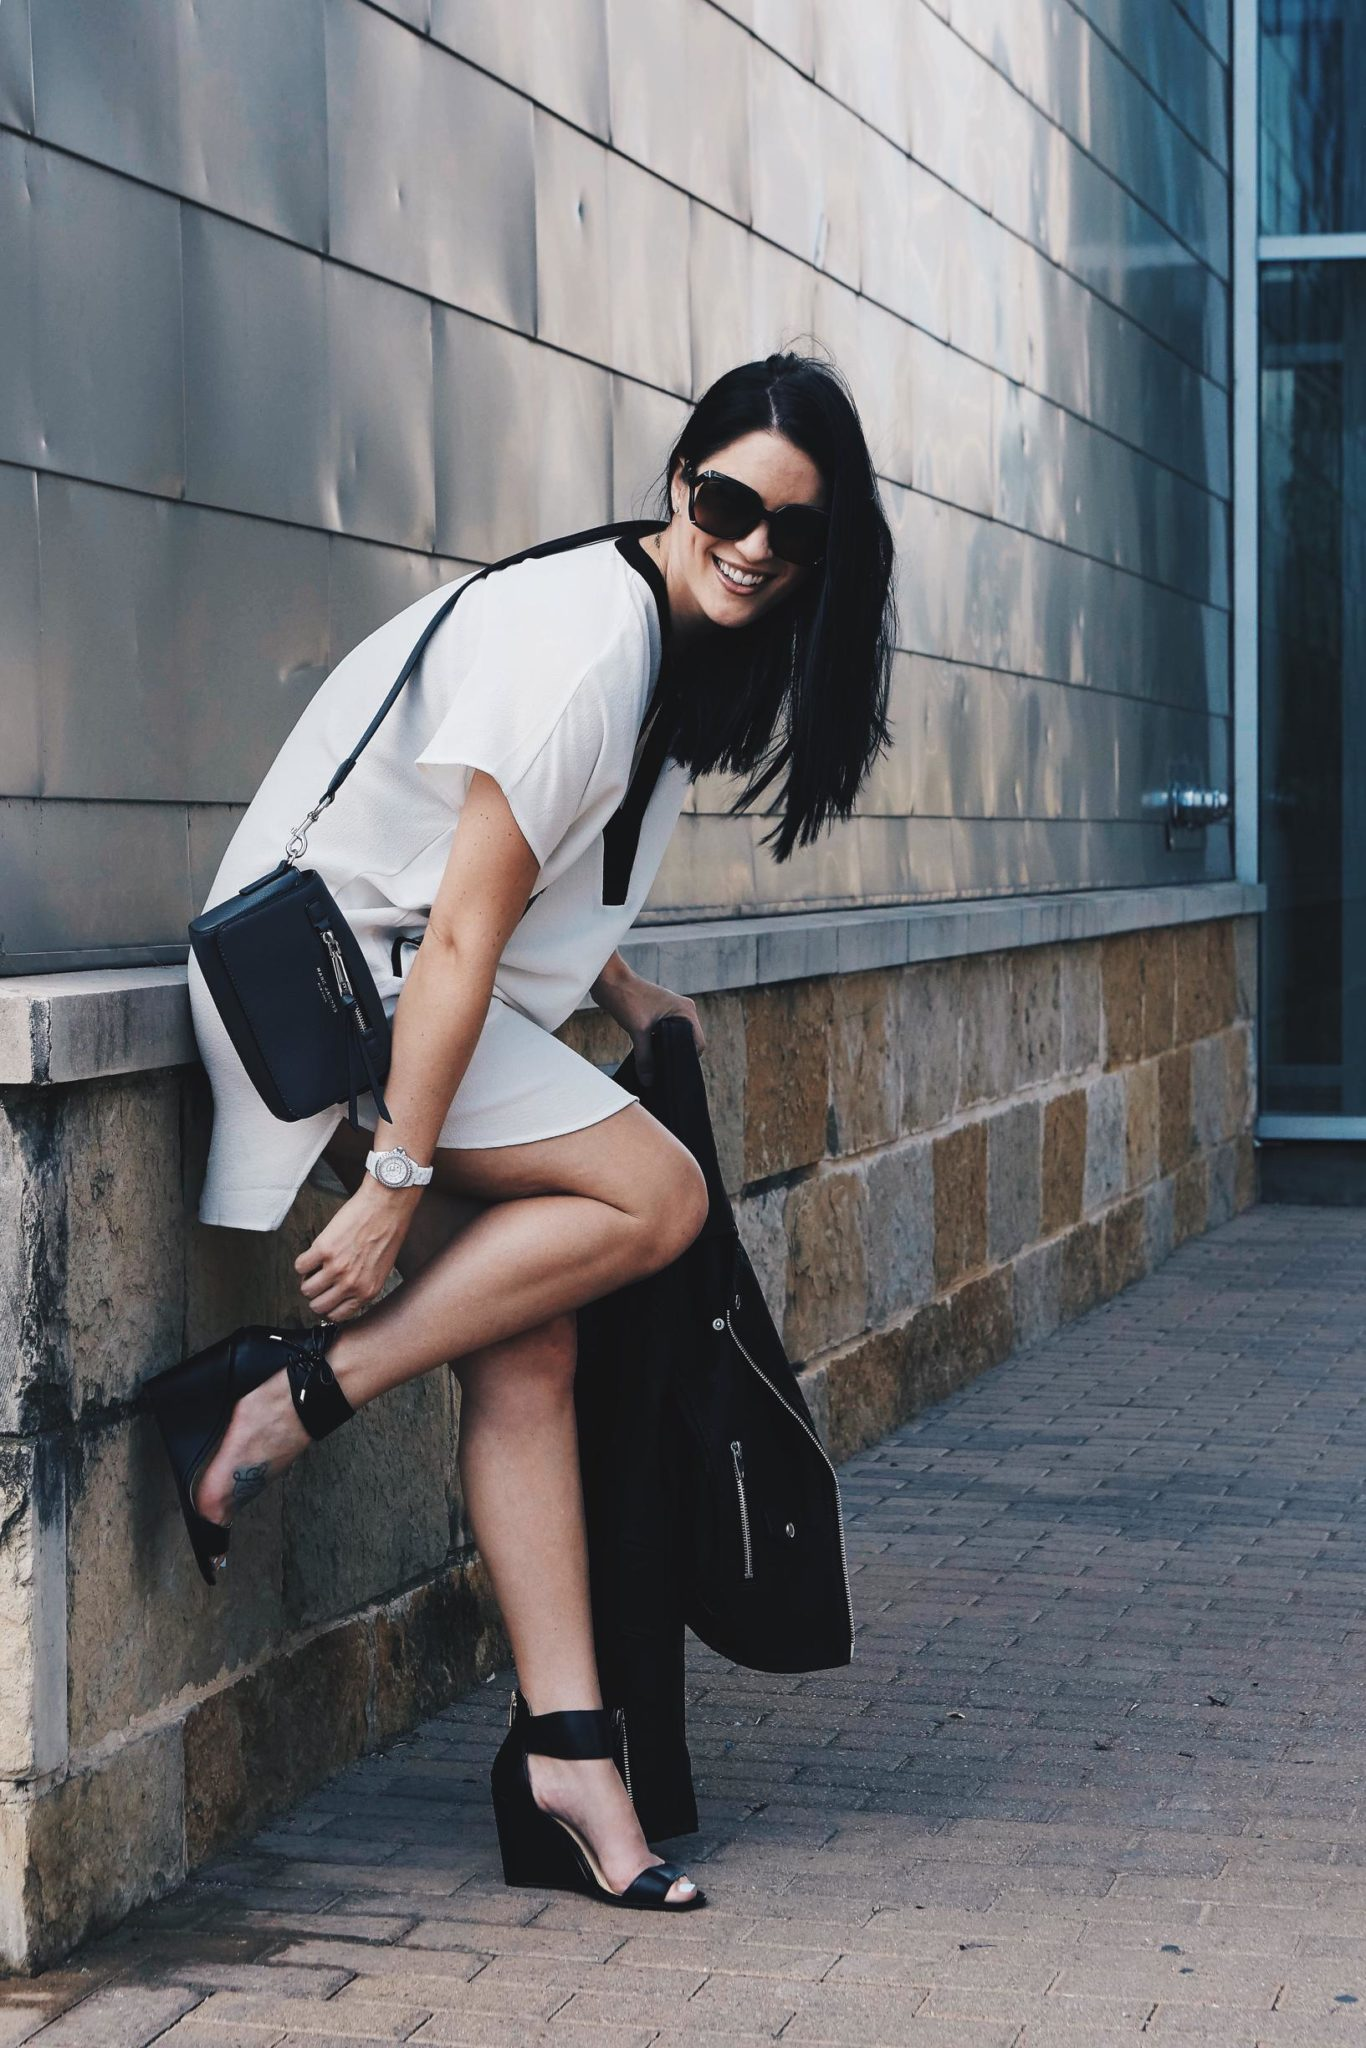 Transitioning Your Wardrobe from Summer to Fall | summer to fall style tips | summer to fall fashion tips | summer fashion tips | summer outfit ideas | summer style tips | what to wear for summer | warm weather fashion | fashion for summer | style tips for summer | outfit ideas for summer || Dressed to Kill